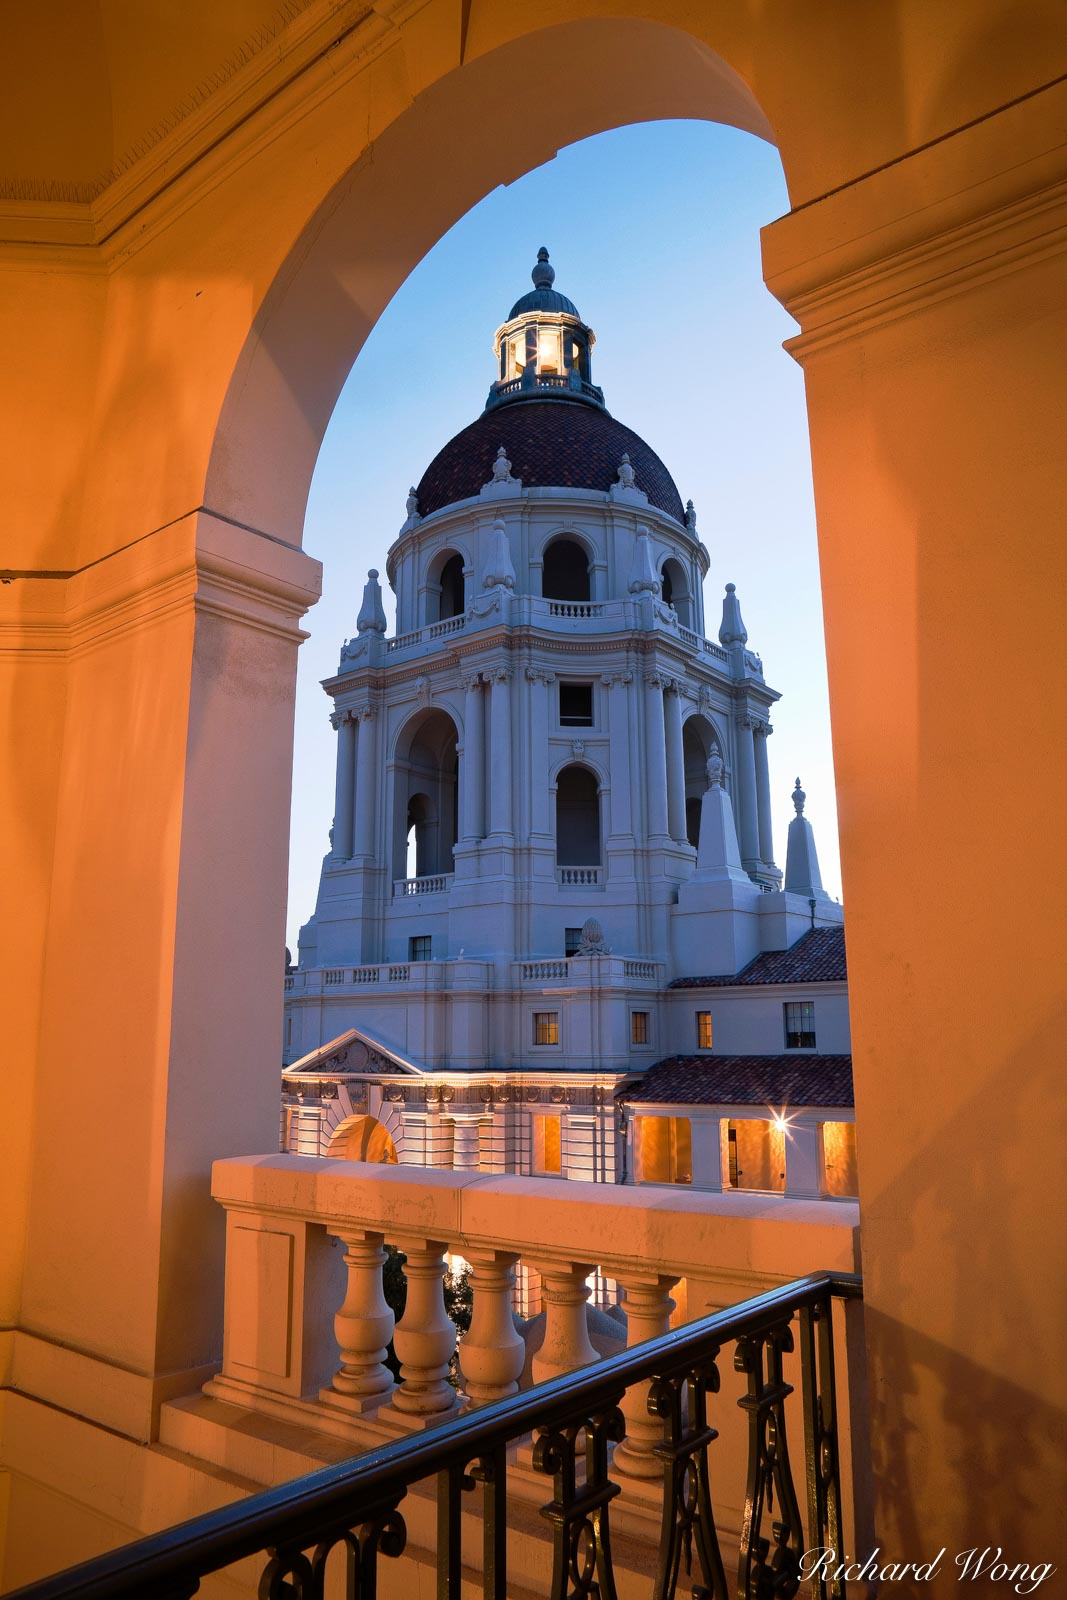 Pasadena City Hall Architecture, California, photo, photo